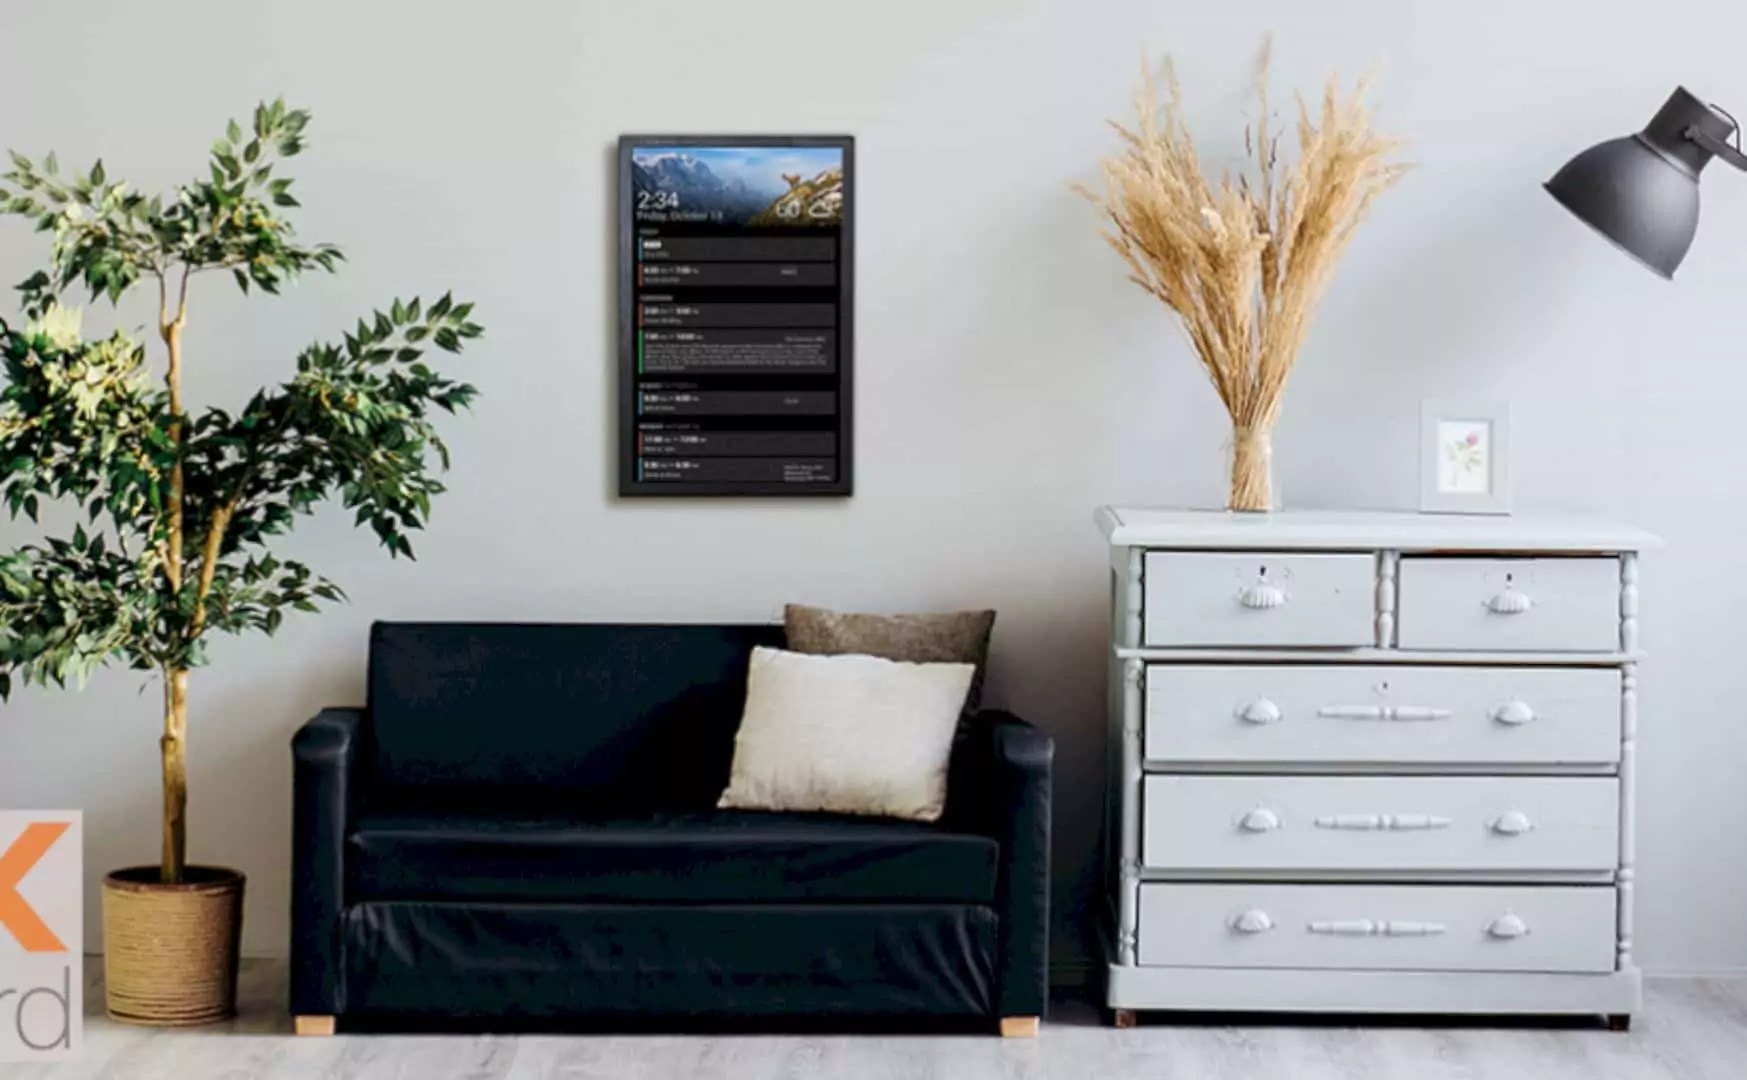 dakboard the revolutionary wall mounted display design listicle